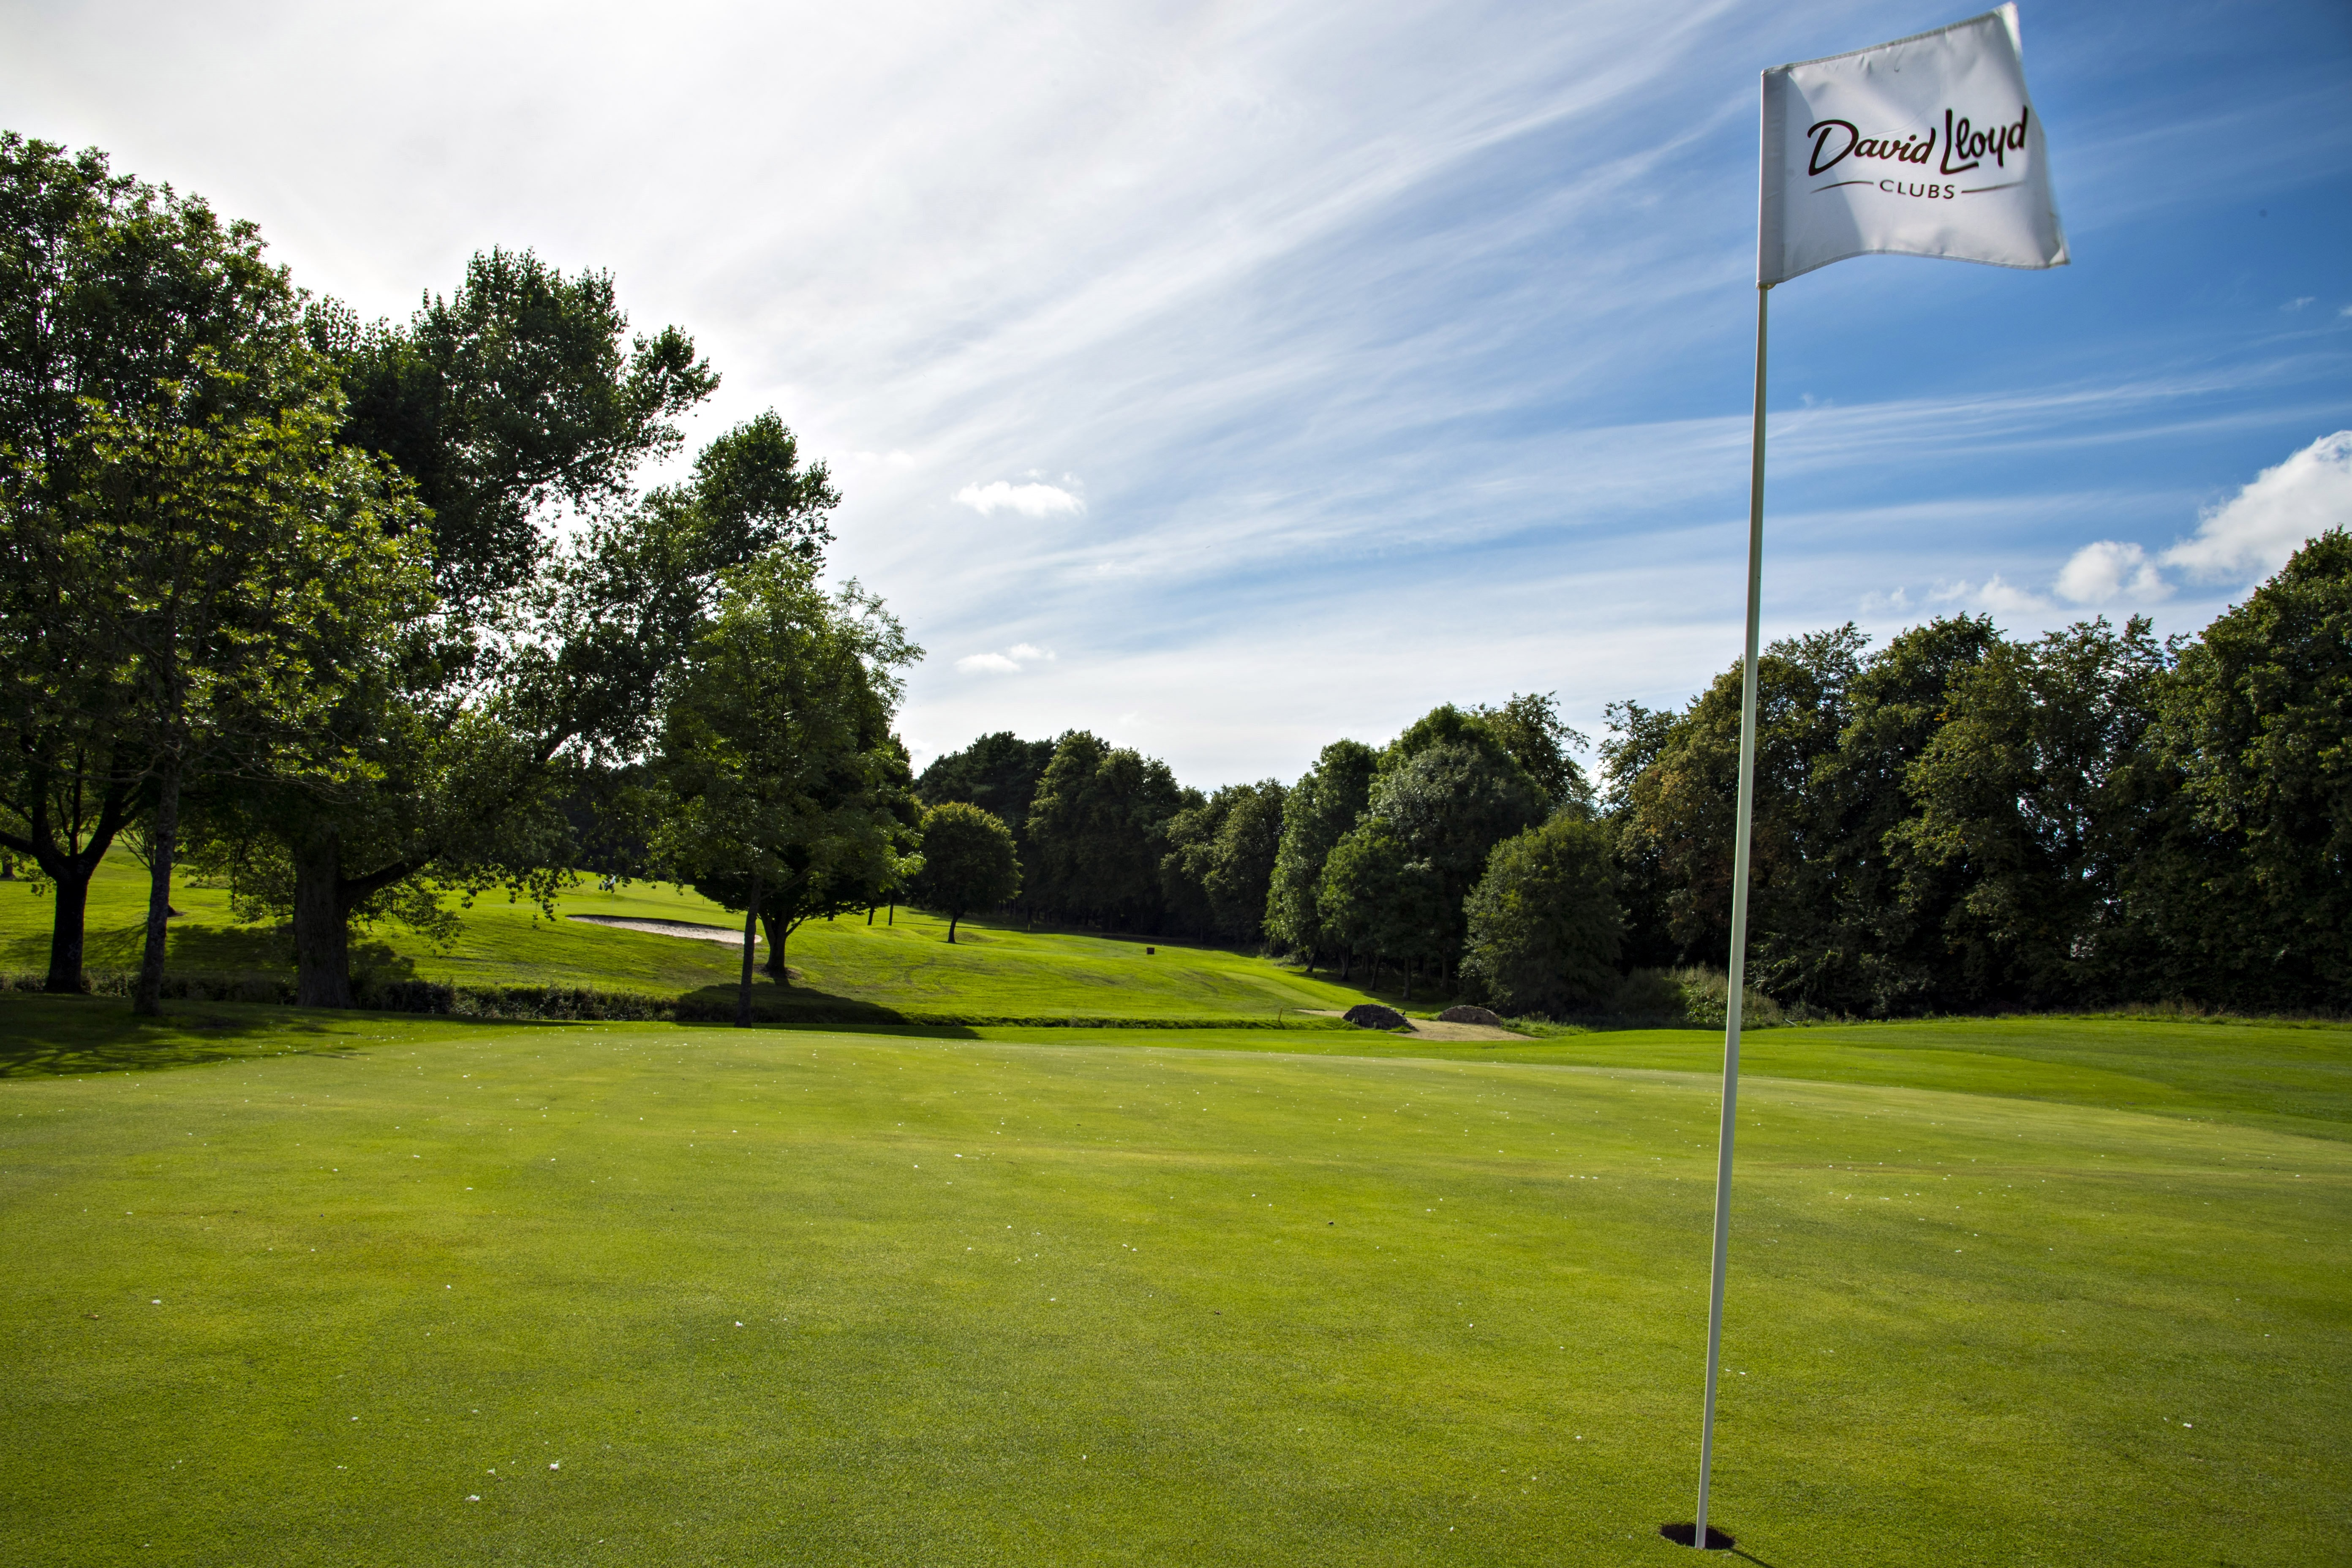 Golf at Glasgow Rouken Glen